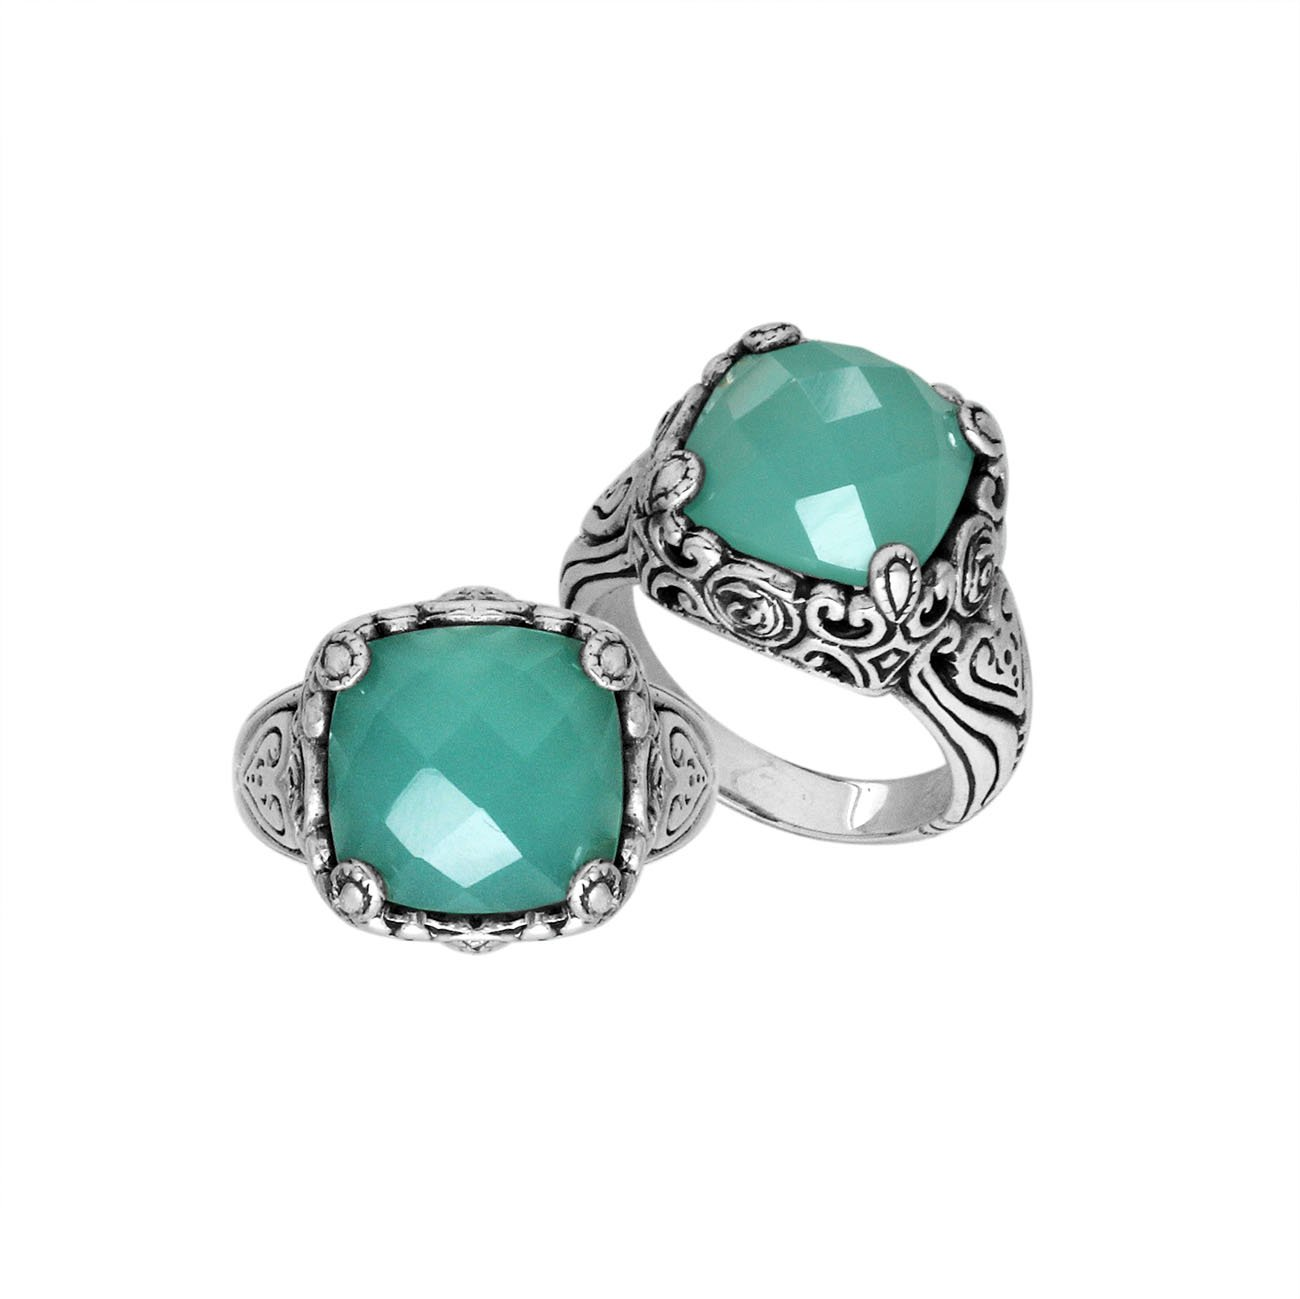 "AR-6227-CH.G-7"" Sterling Silver Ring With Green Chalcedony by Bali Designs"